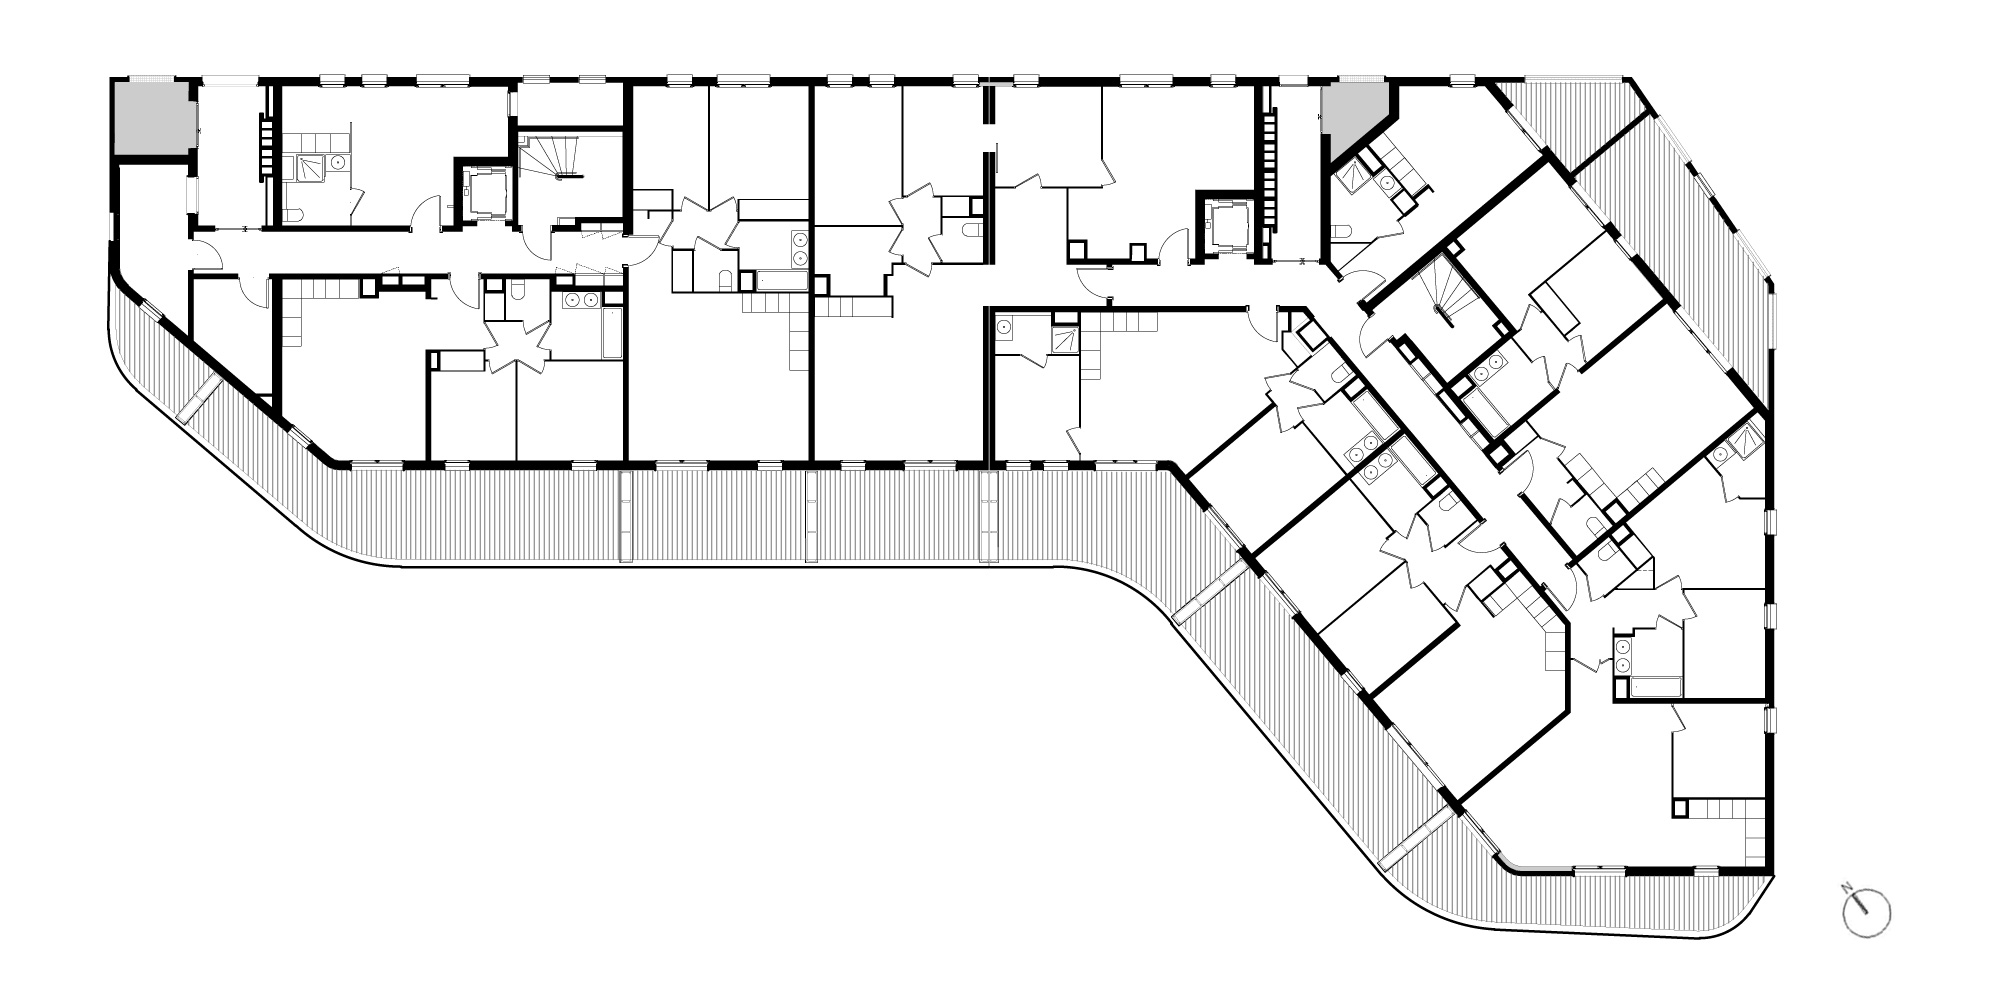 Ground Floor Plan © PietriArchitectes